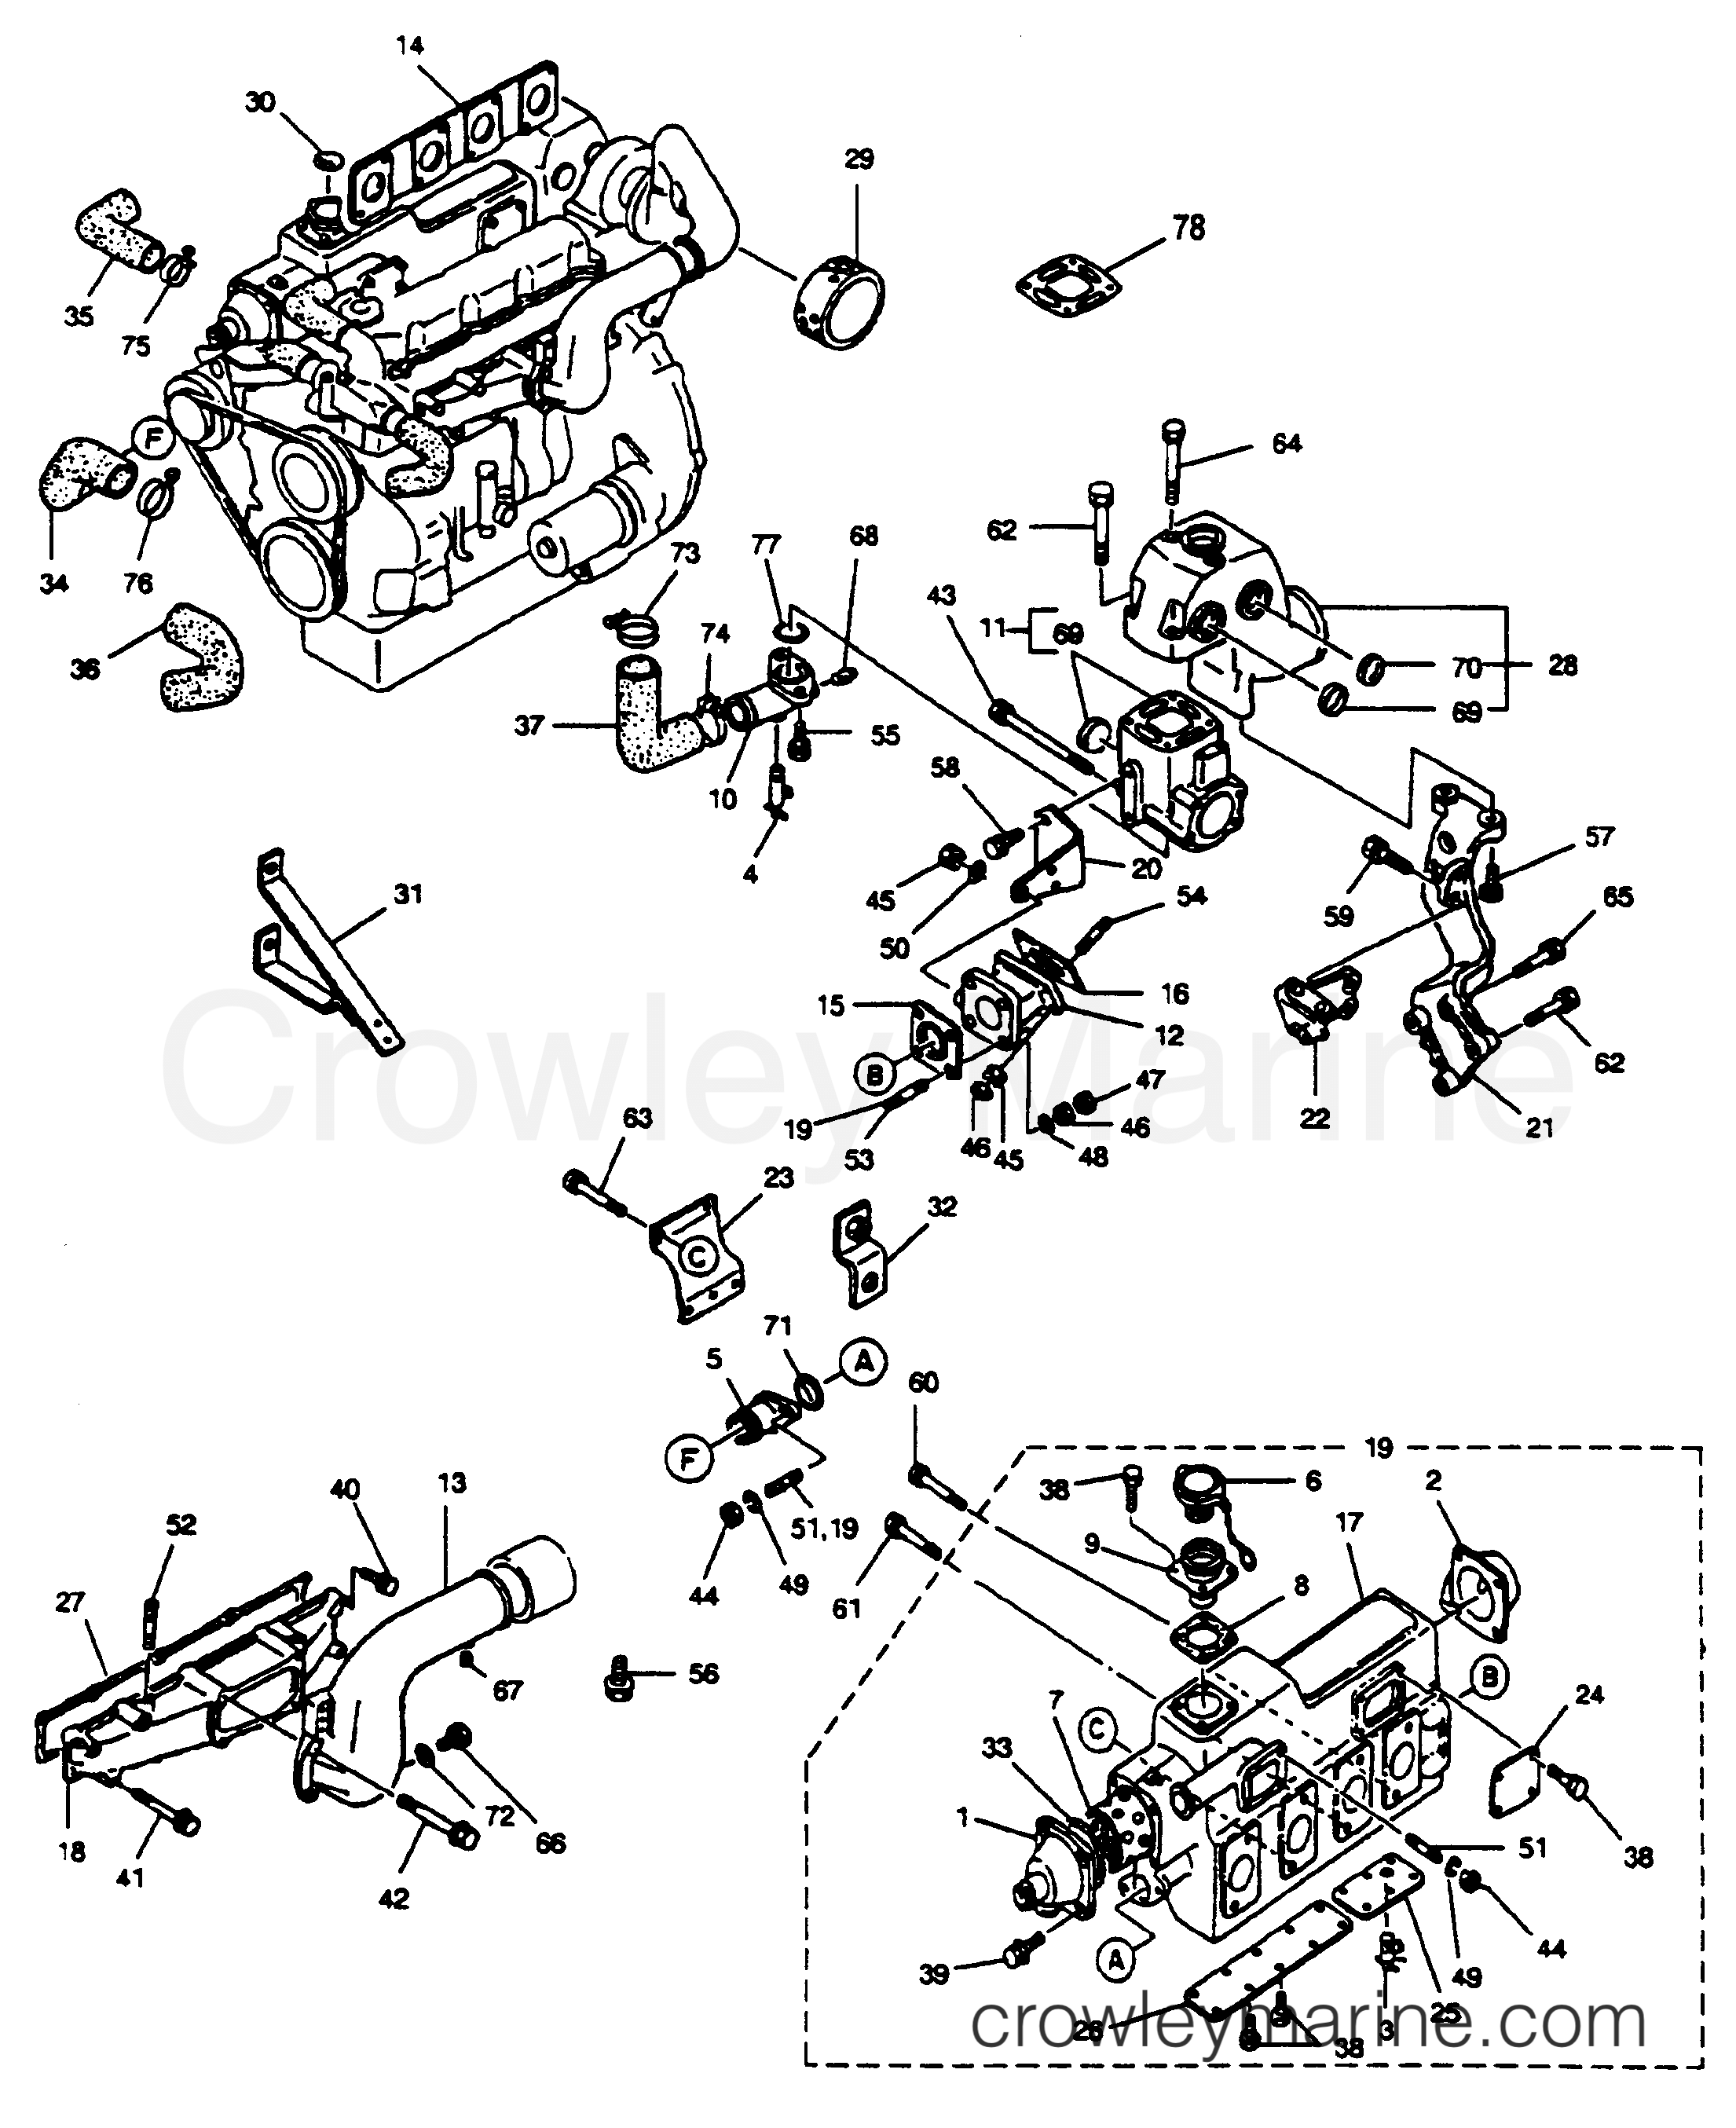 Intake And Exhaust System